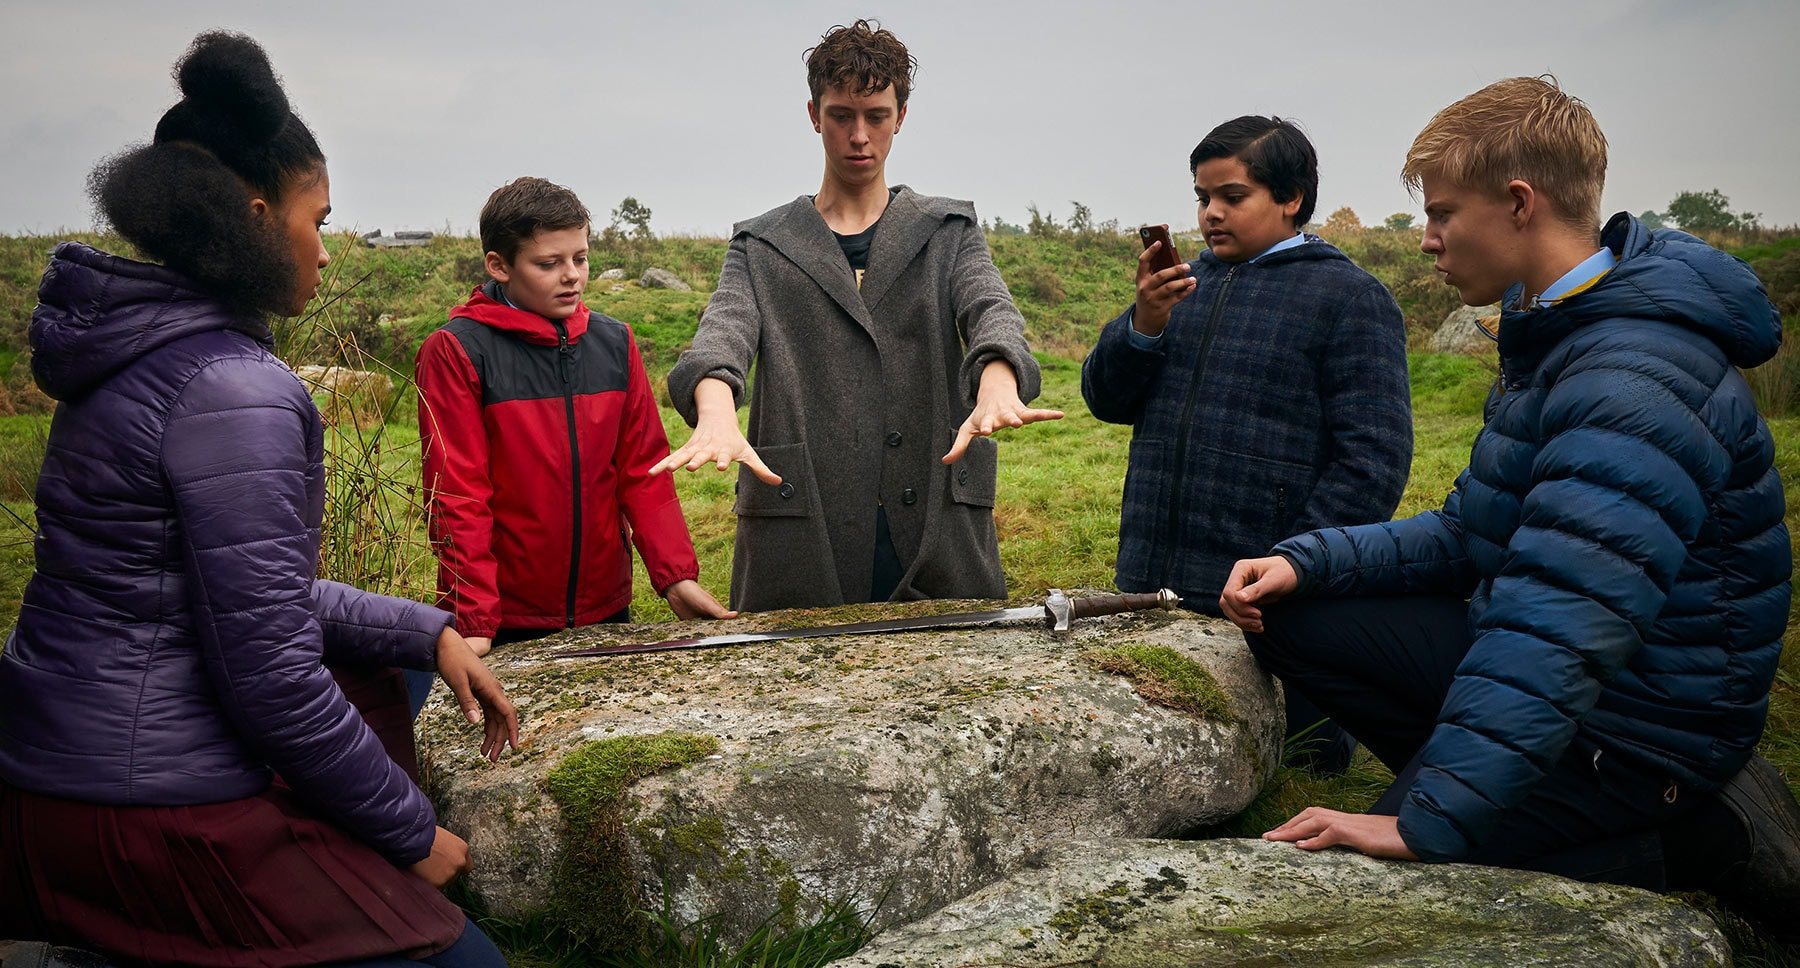 "Kaye (Rhianna Dorris), Alex (Louis Ashbourne Serkis), Young Merlin (Angus Imrie), Bedders (Dean Chaumoo) and Lance (Tom Taylor) in the movie ""The Kid Who Would Be King"""